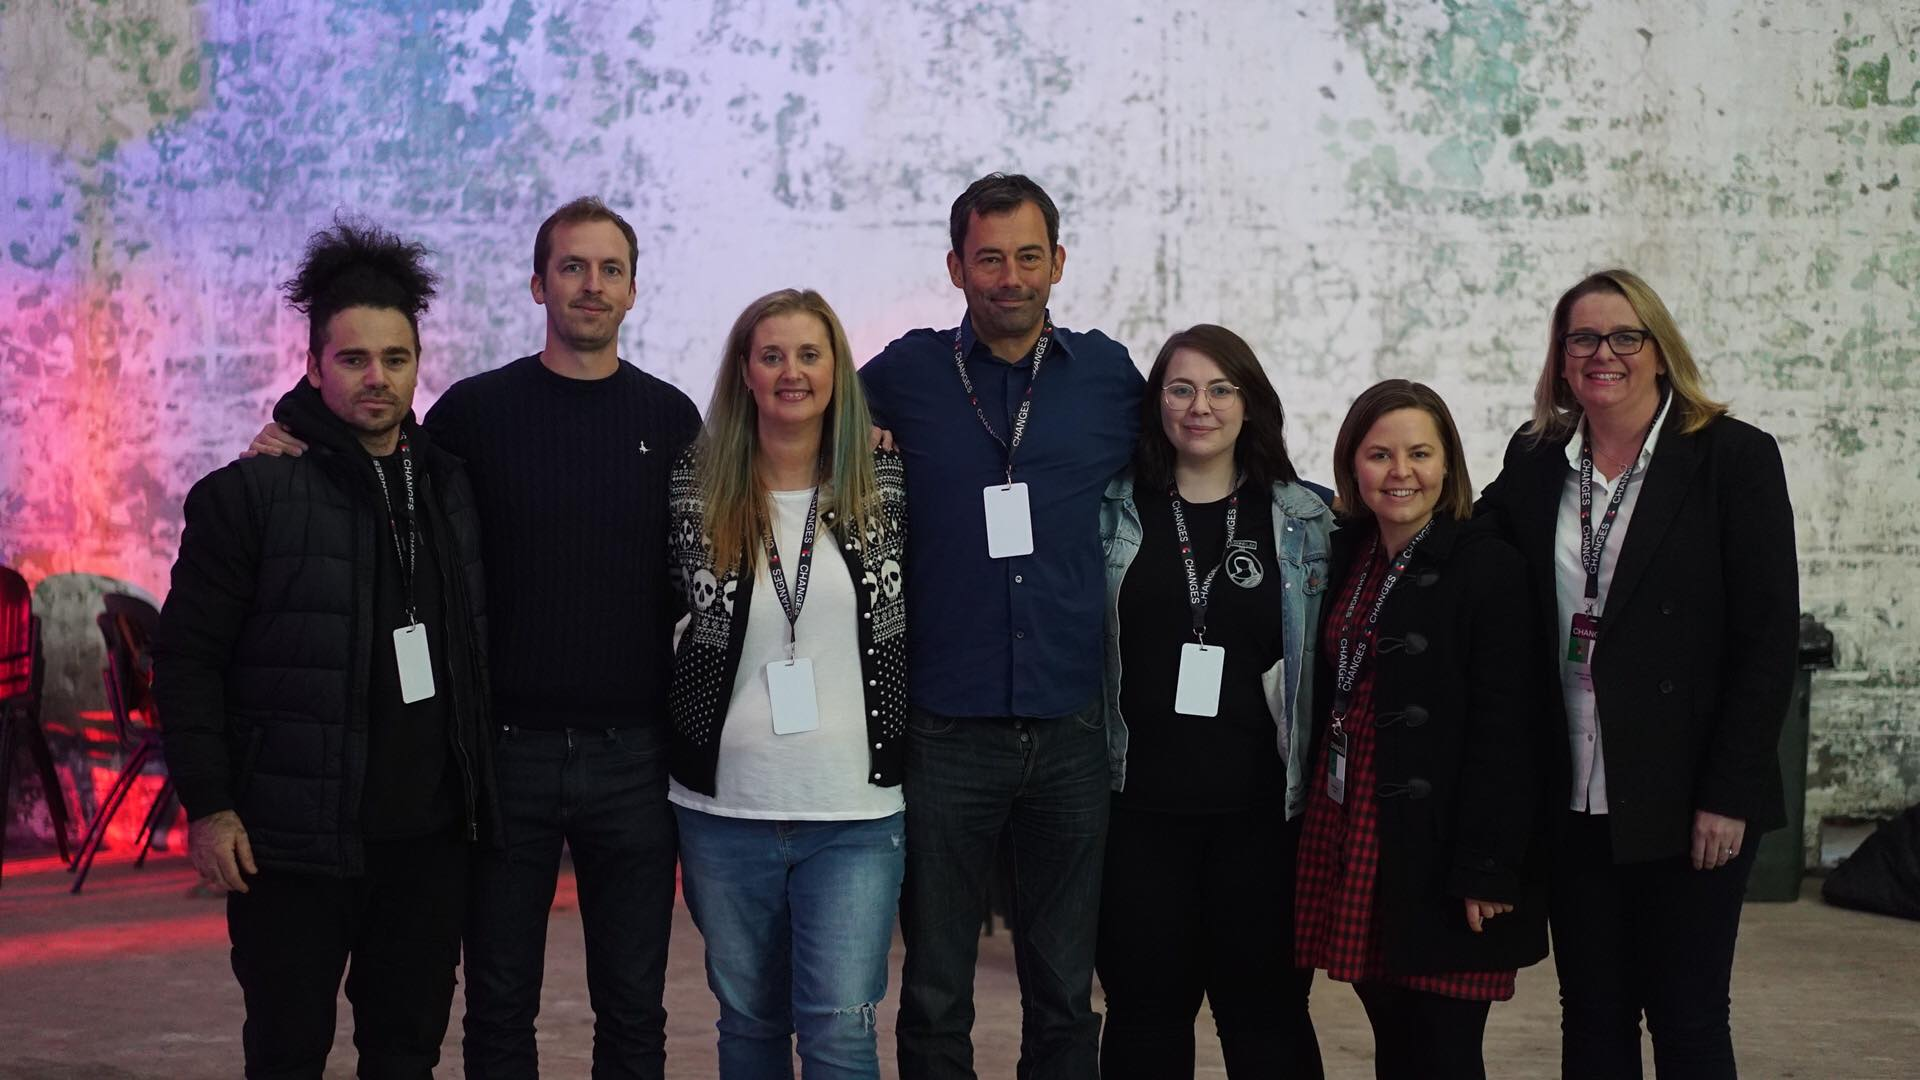 L-R: Neil Morris (VMDO), Chris Carey (Media Insight Consulting), Cameo Carlson (mtheory), Jake Beaumont Nesbitt (International Music Managers Forum), Sianne van Abkoude, Katie Stewart, Bonnie Dalton (all VMDO). Source: VMDO